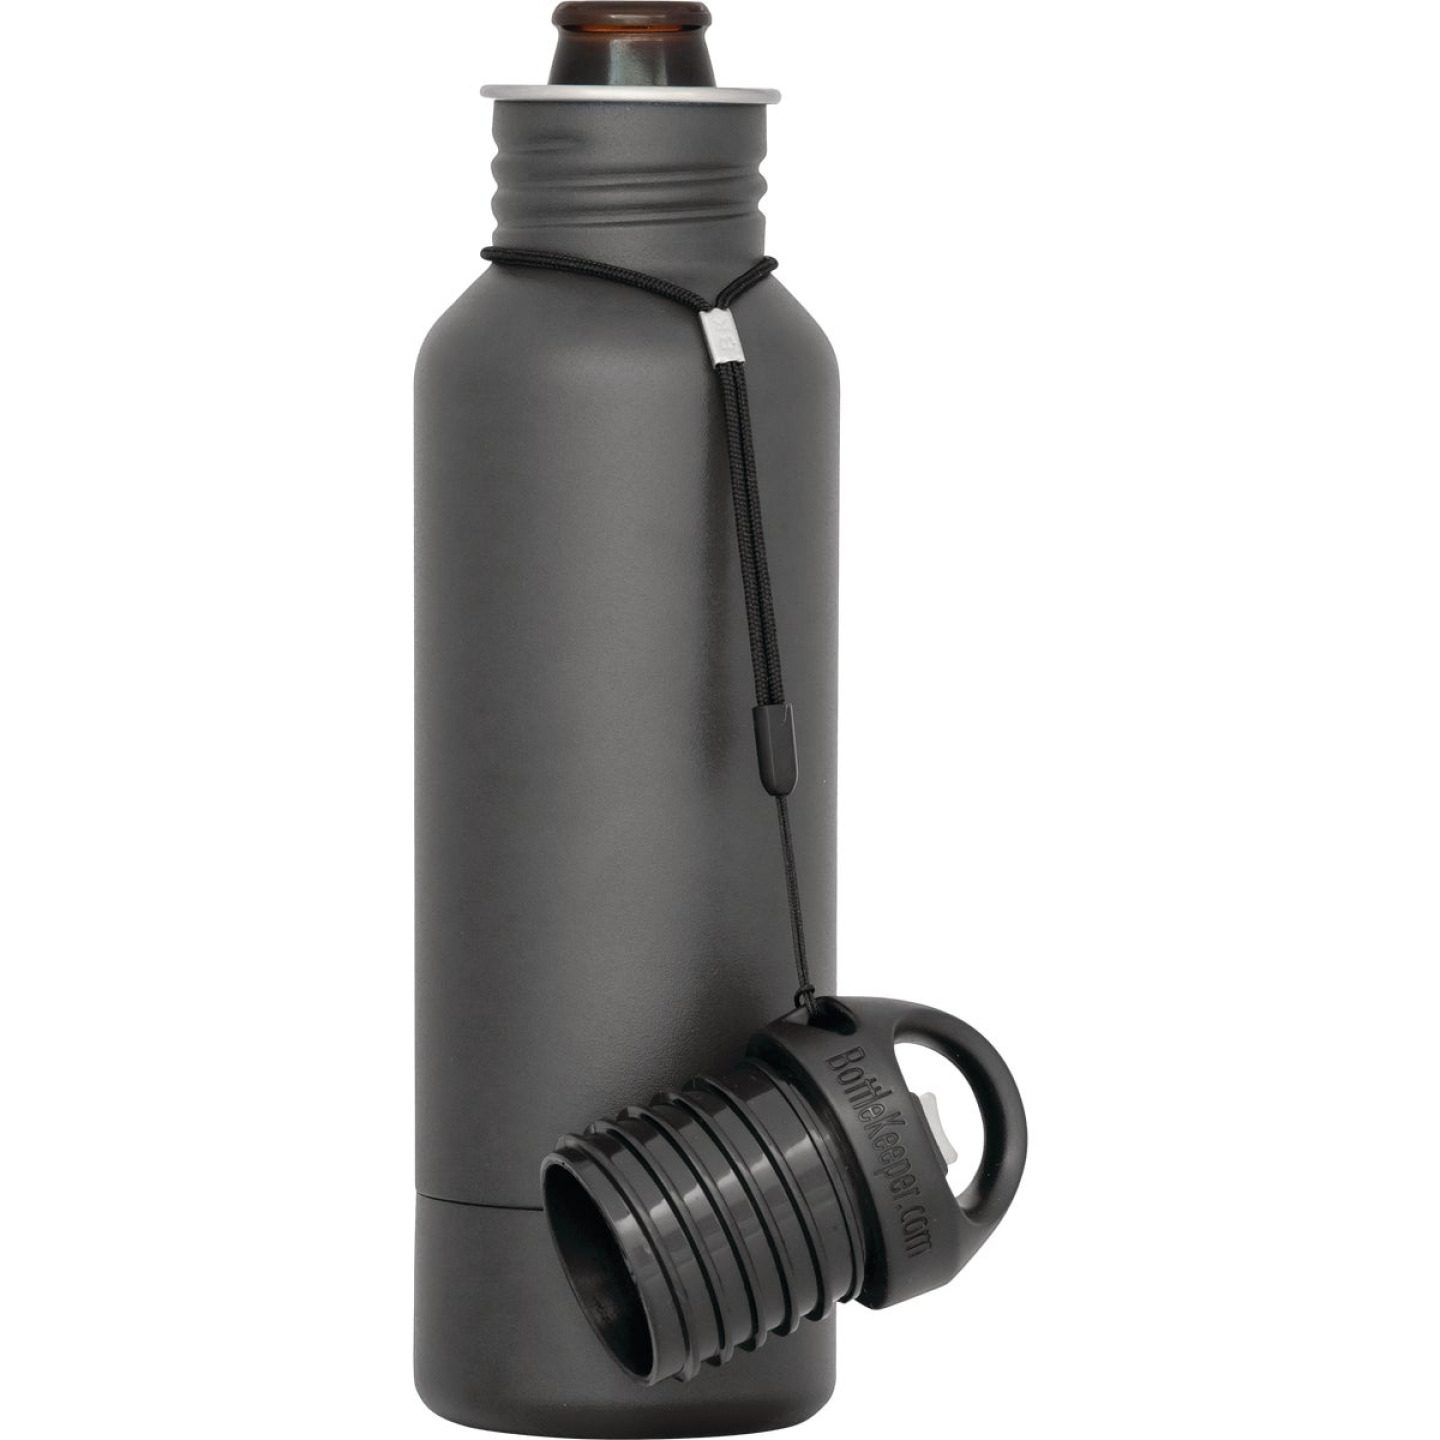 BottleKeeper 12 Oz. Charcoal Stainless Steel Insulated Drink Holder Image 1